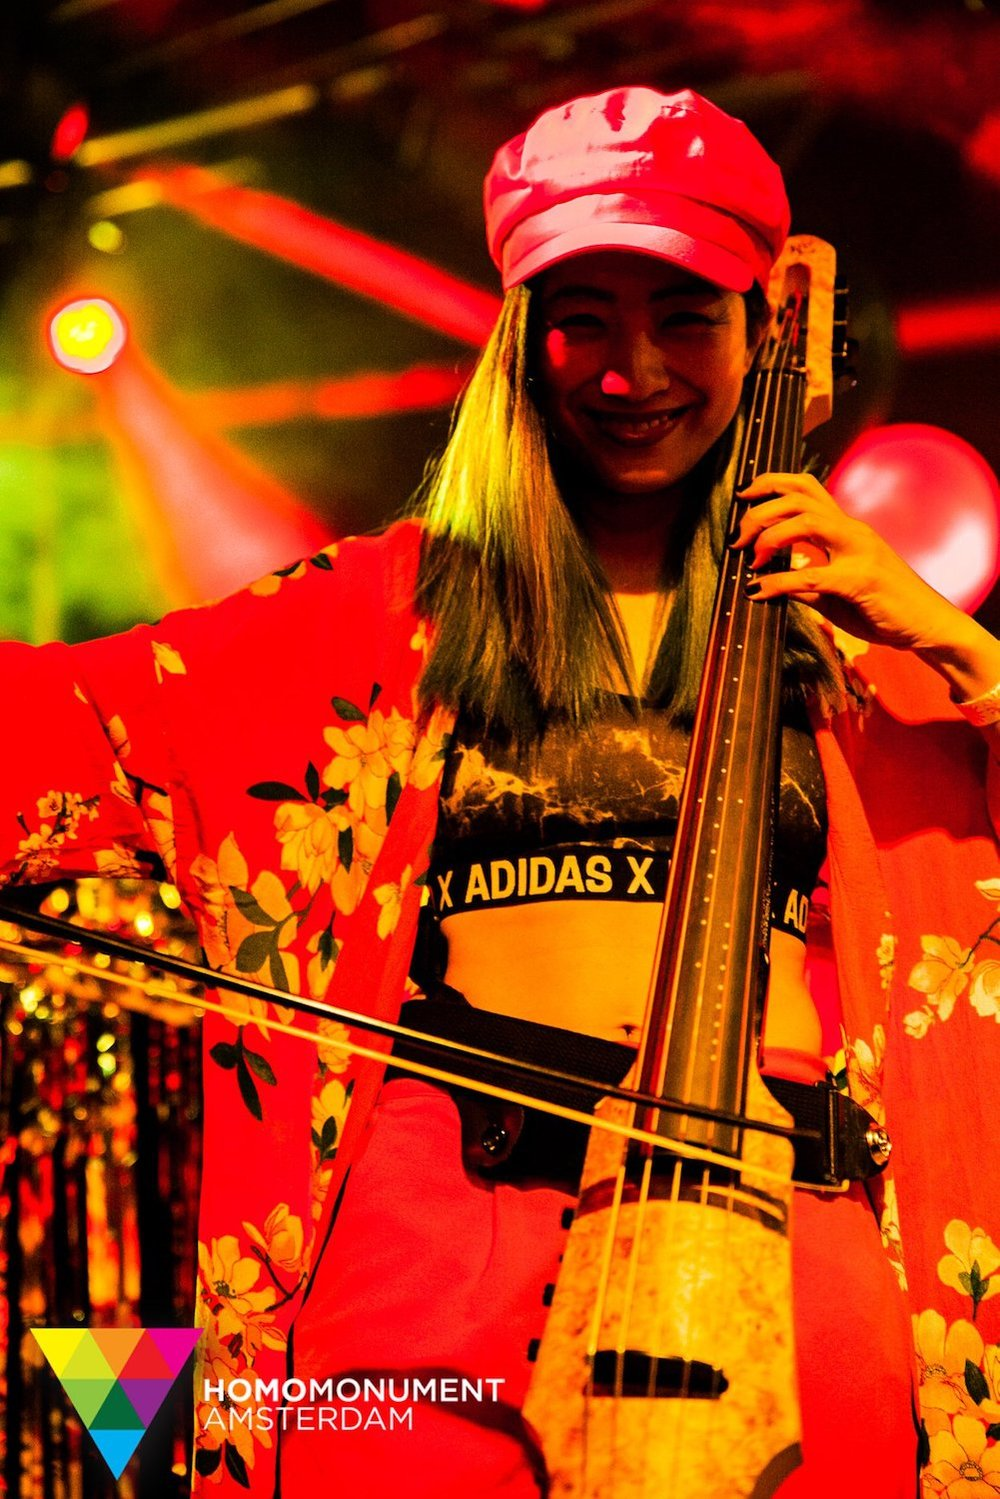 kings-night-festival-2018-homomonument-the-wong-janice-cellist-photo-by-prins-de-vos-ns-design-CR5-electric-cello-4.jpg